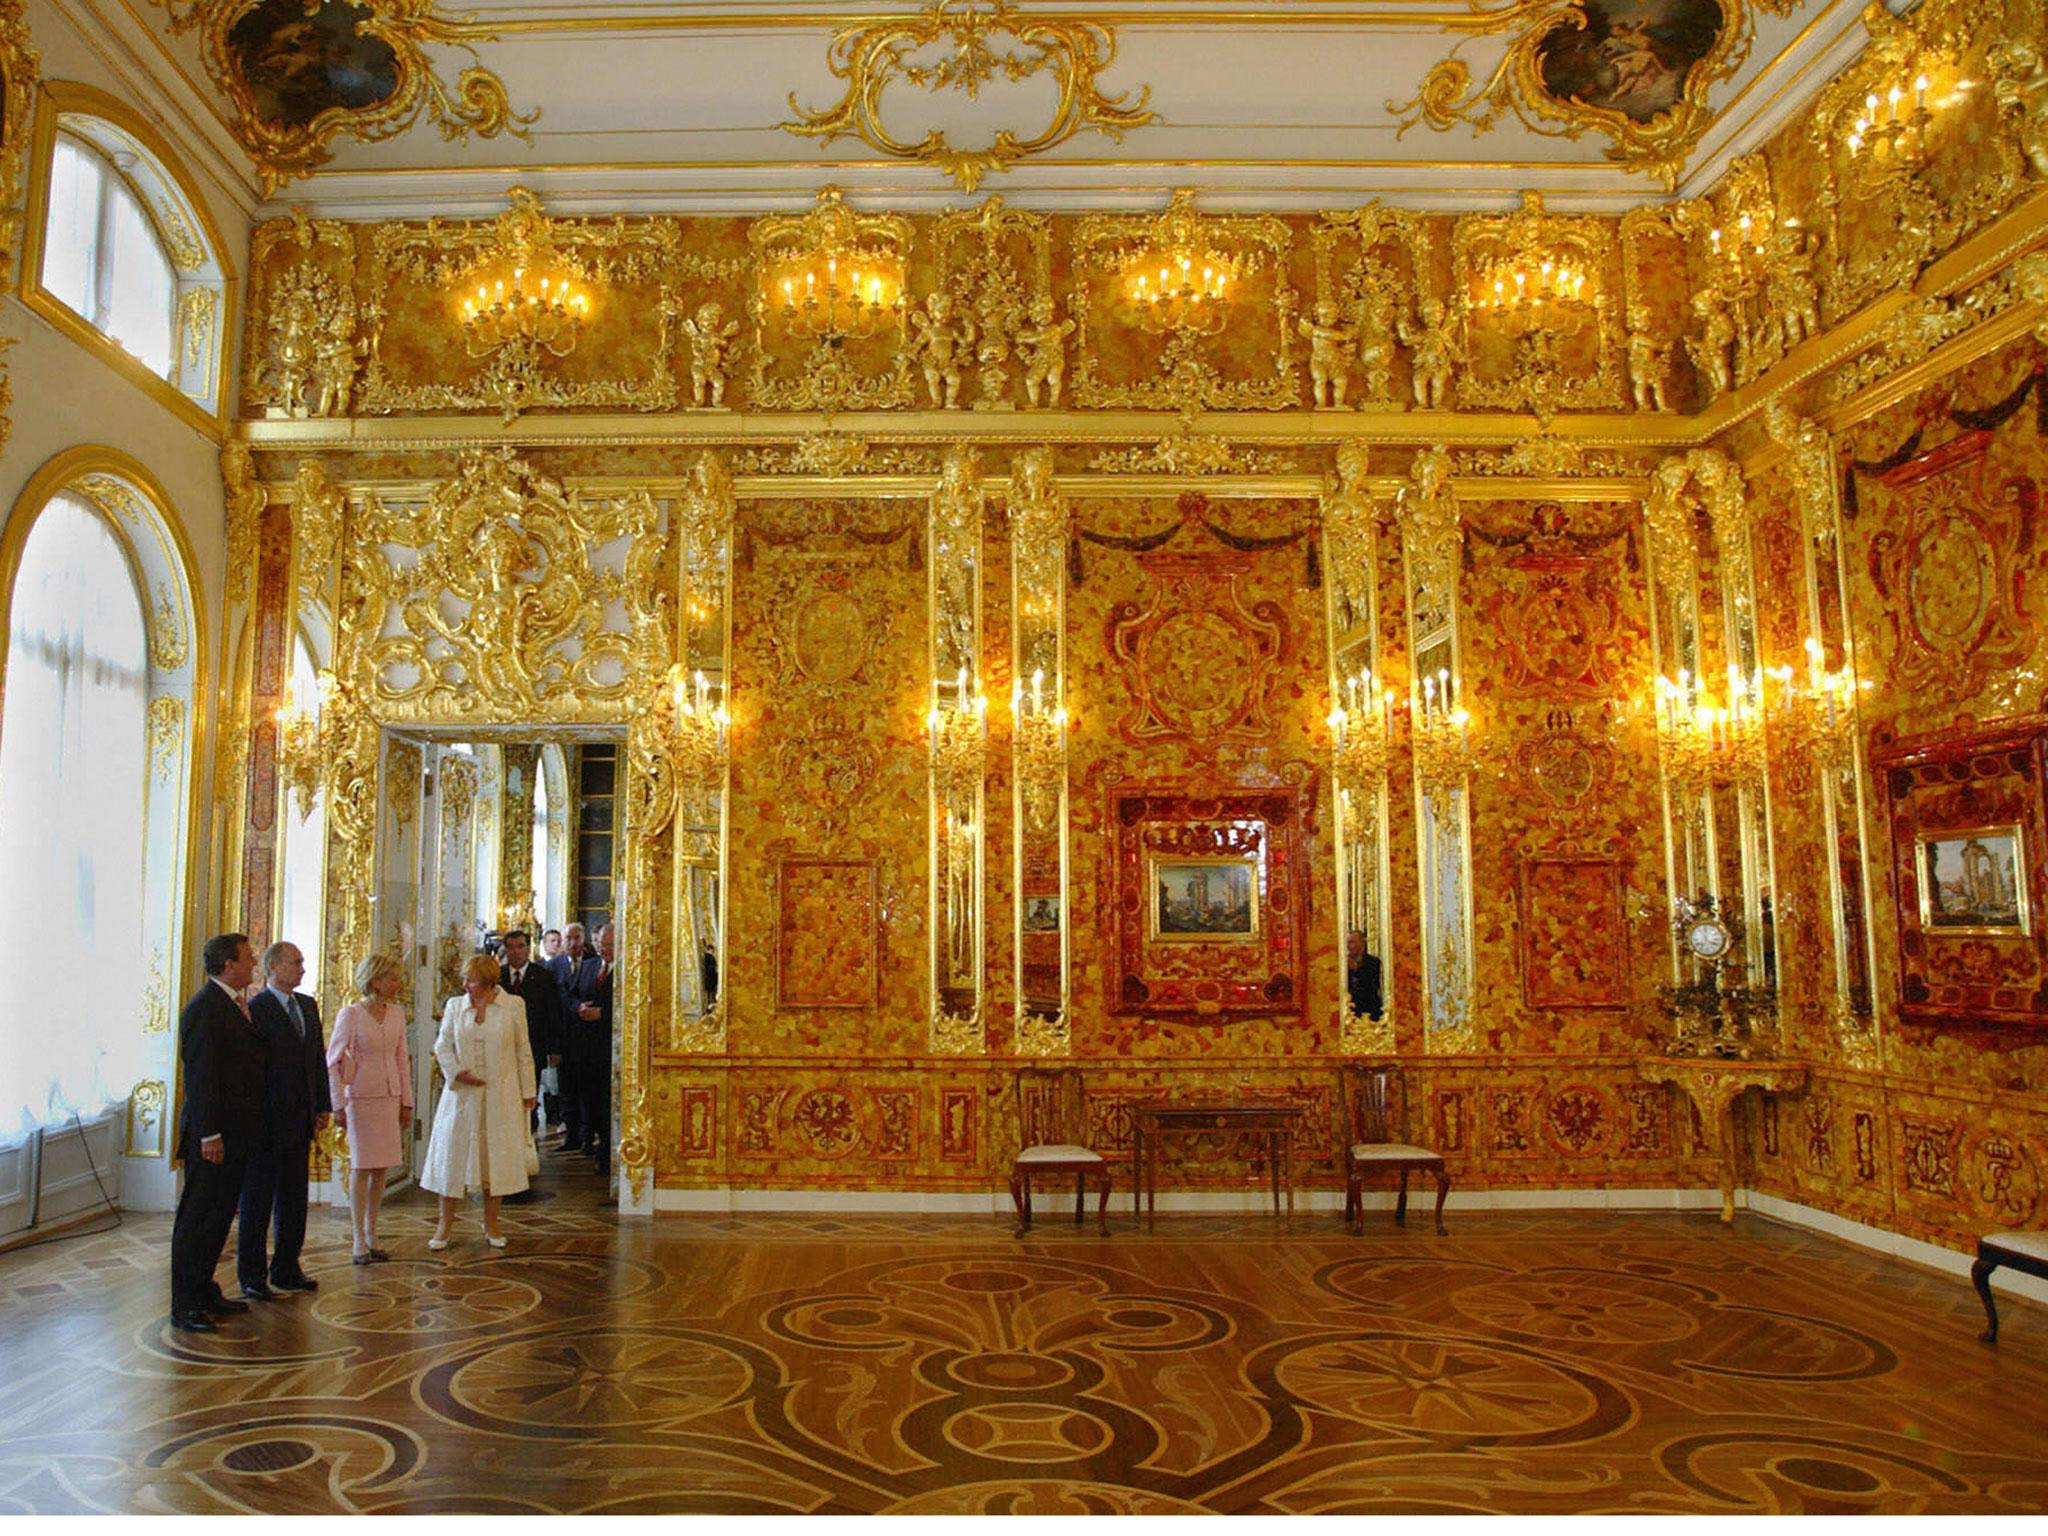 Amber Room Priceless Russian Treasure Stolen By Nazis